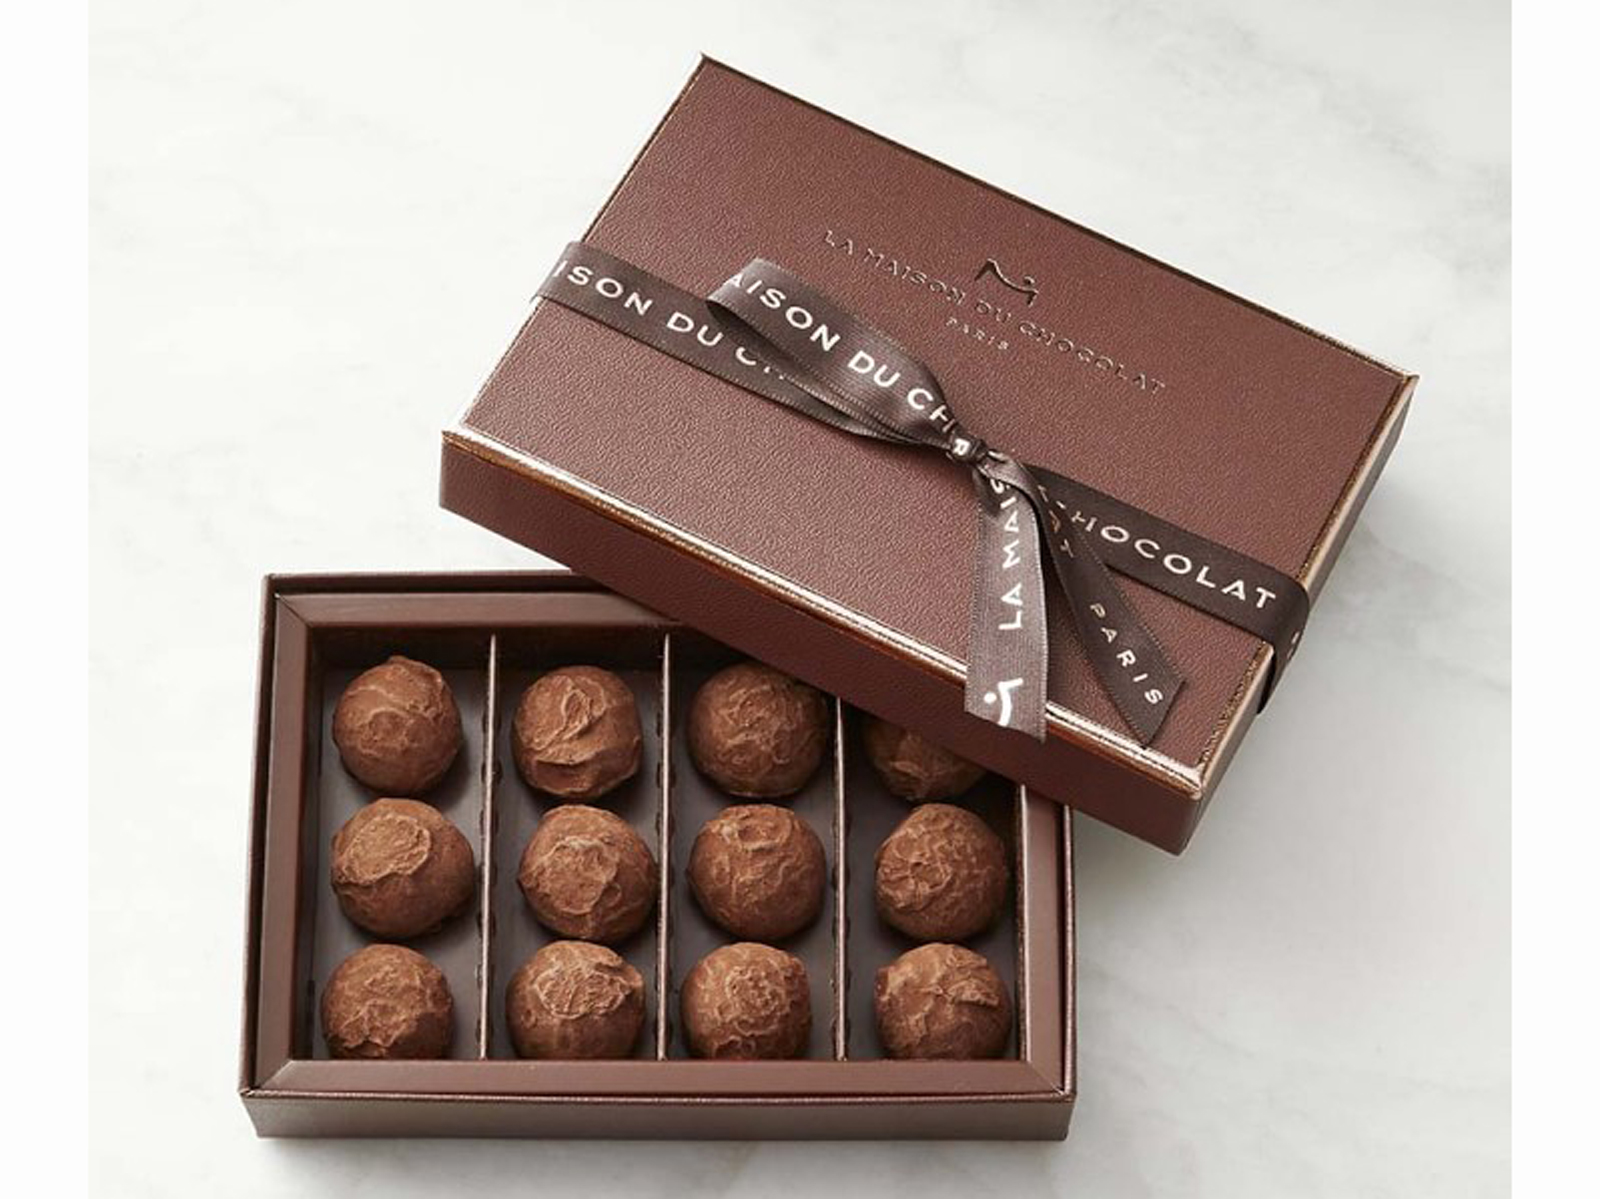 For rich chocolate, look no further than La Maison du Chocolat. These dark chocolate truffles are the perfect pop of flavor and smooth texture to savor every last drop. The European blend is made by master confectioners in France, and uses some of the best ingredients for the truffle mousse and the dusting of premium cocoa powder. $50 at williams-sonoma.com